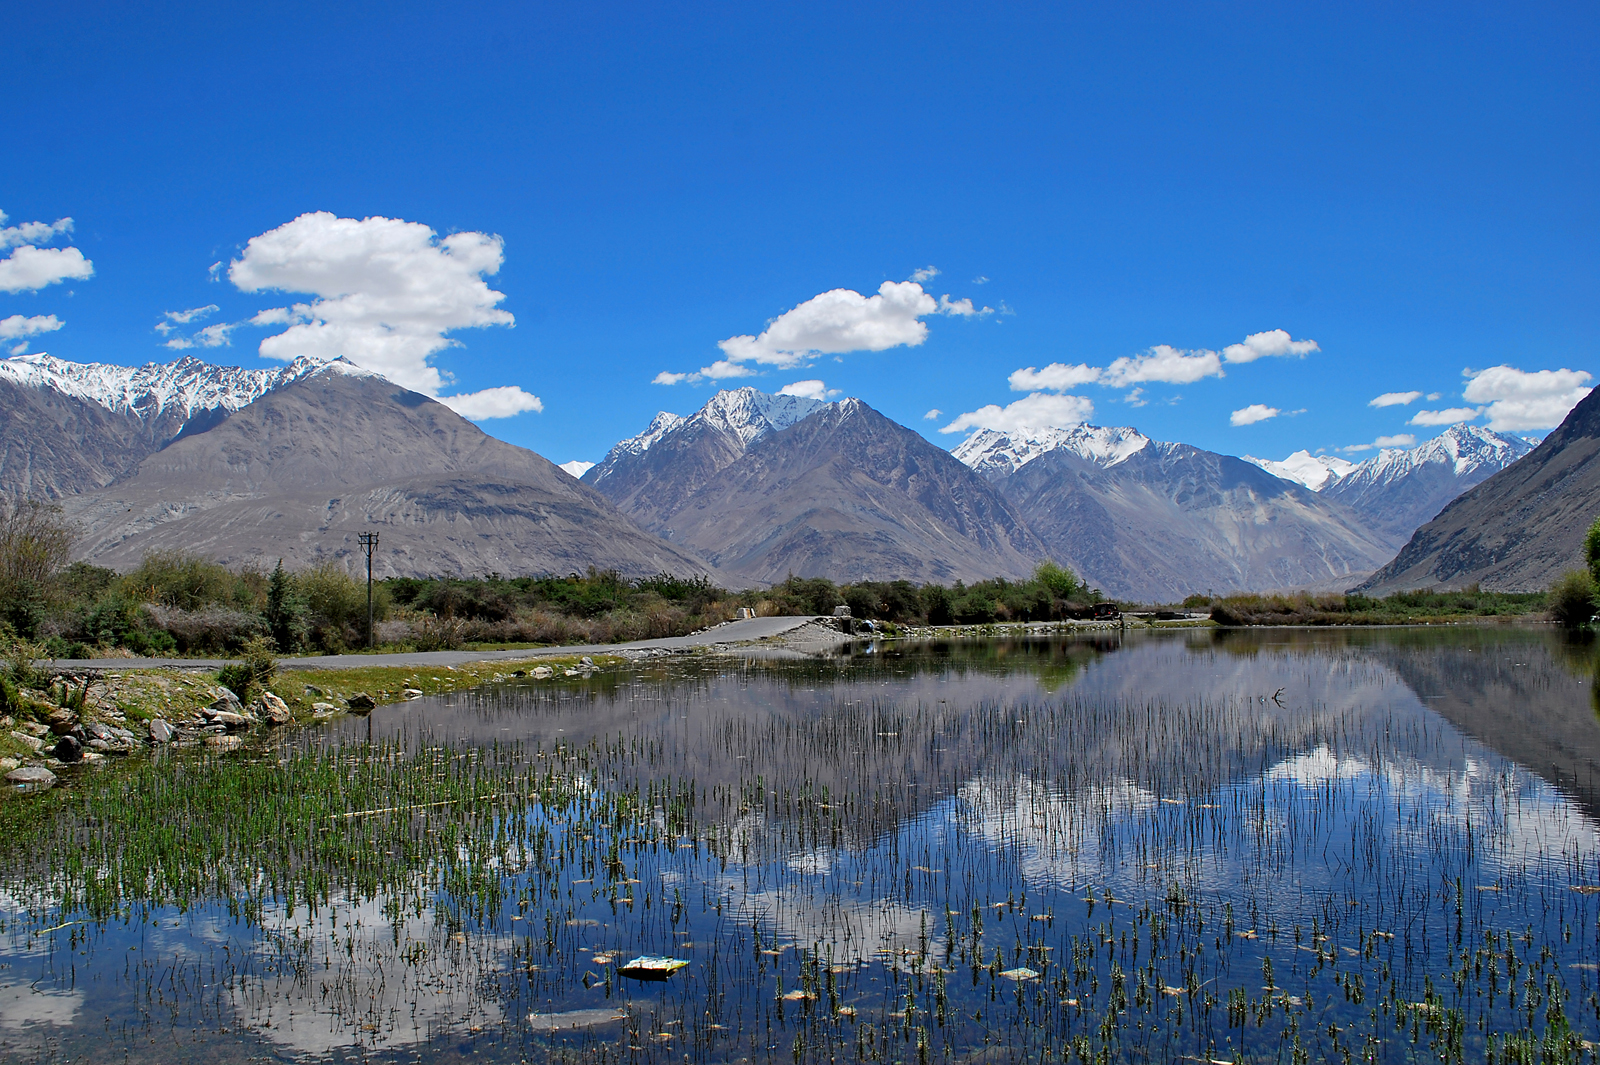 Jammu And Kashmir In India Sightseeing And Landmarks